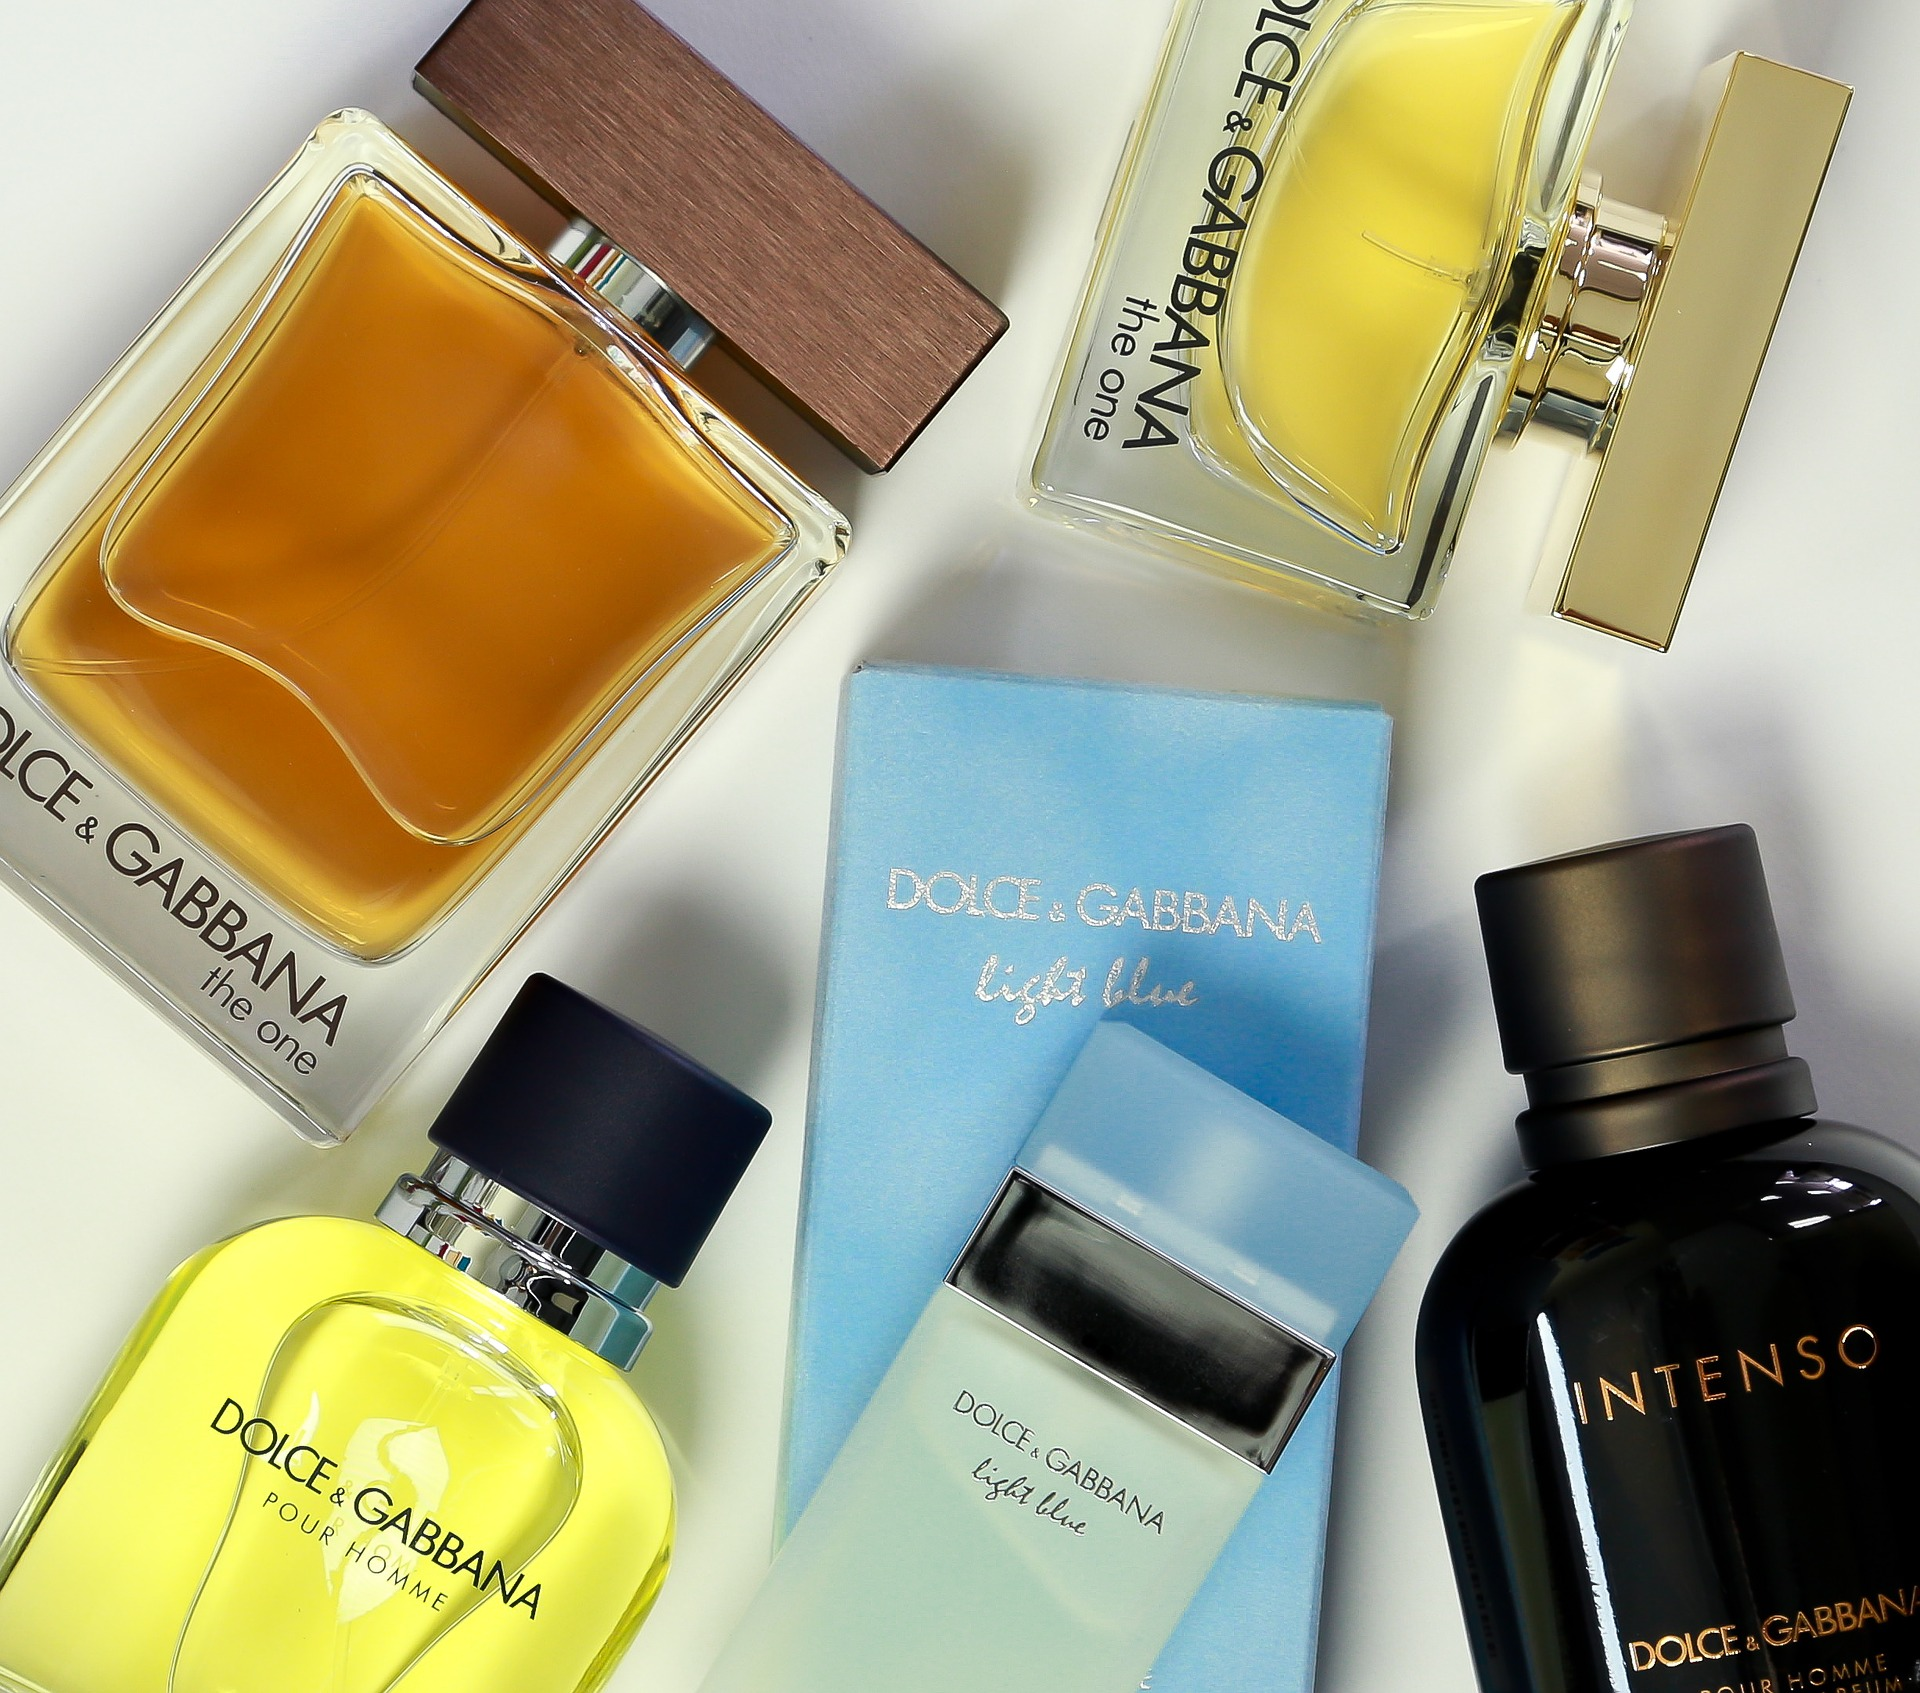 The Best Perfumes For Men: Top 5 Timeless Fragrances